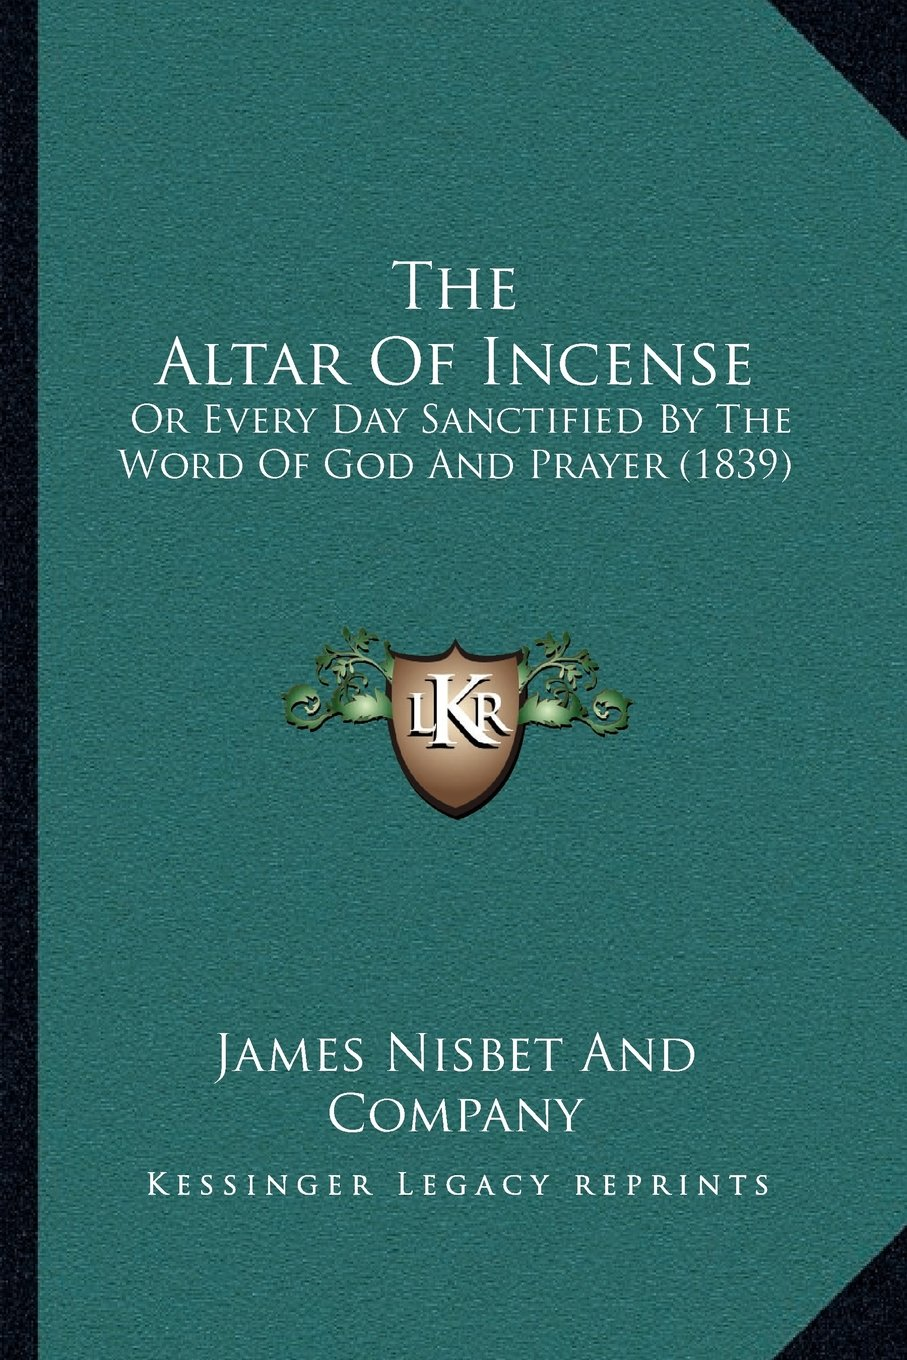 Download The Altar Of Incense: Or Every Day Sanctified By The Word Of God And Prayer (1839) ebook